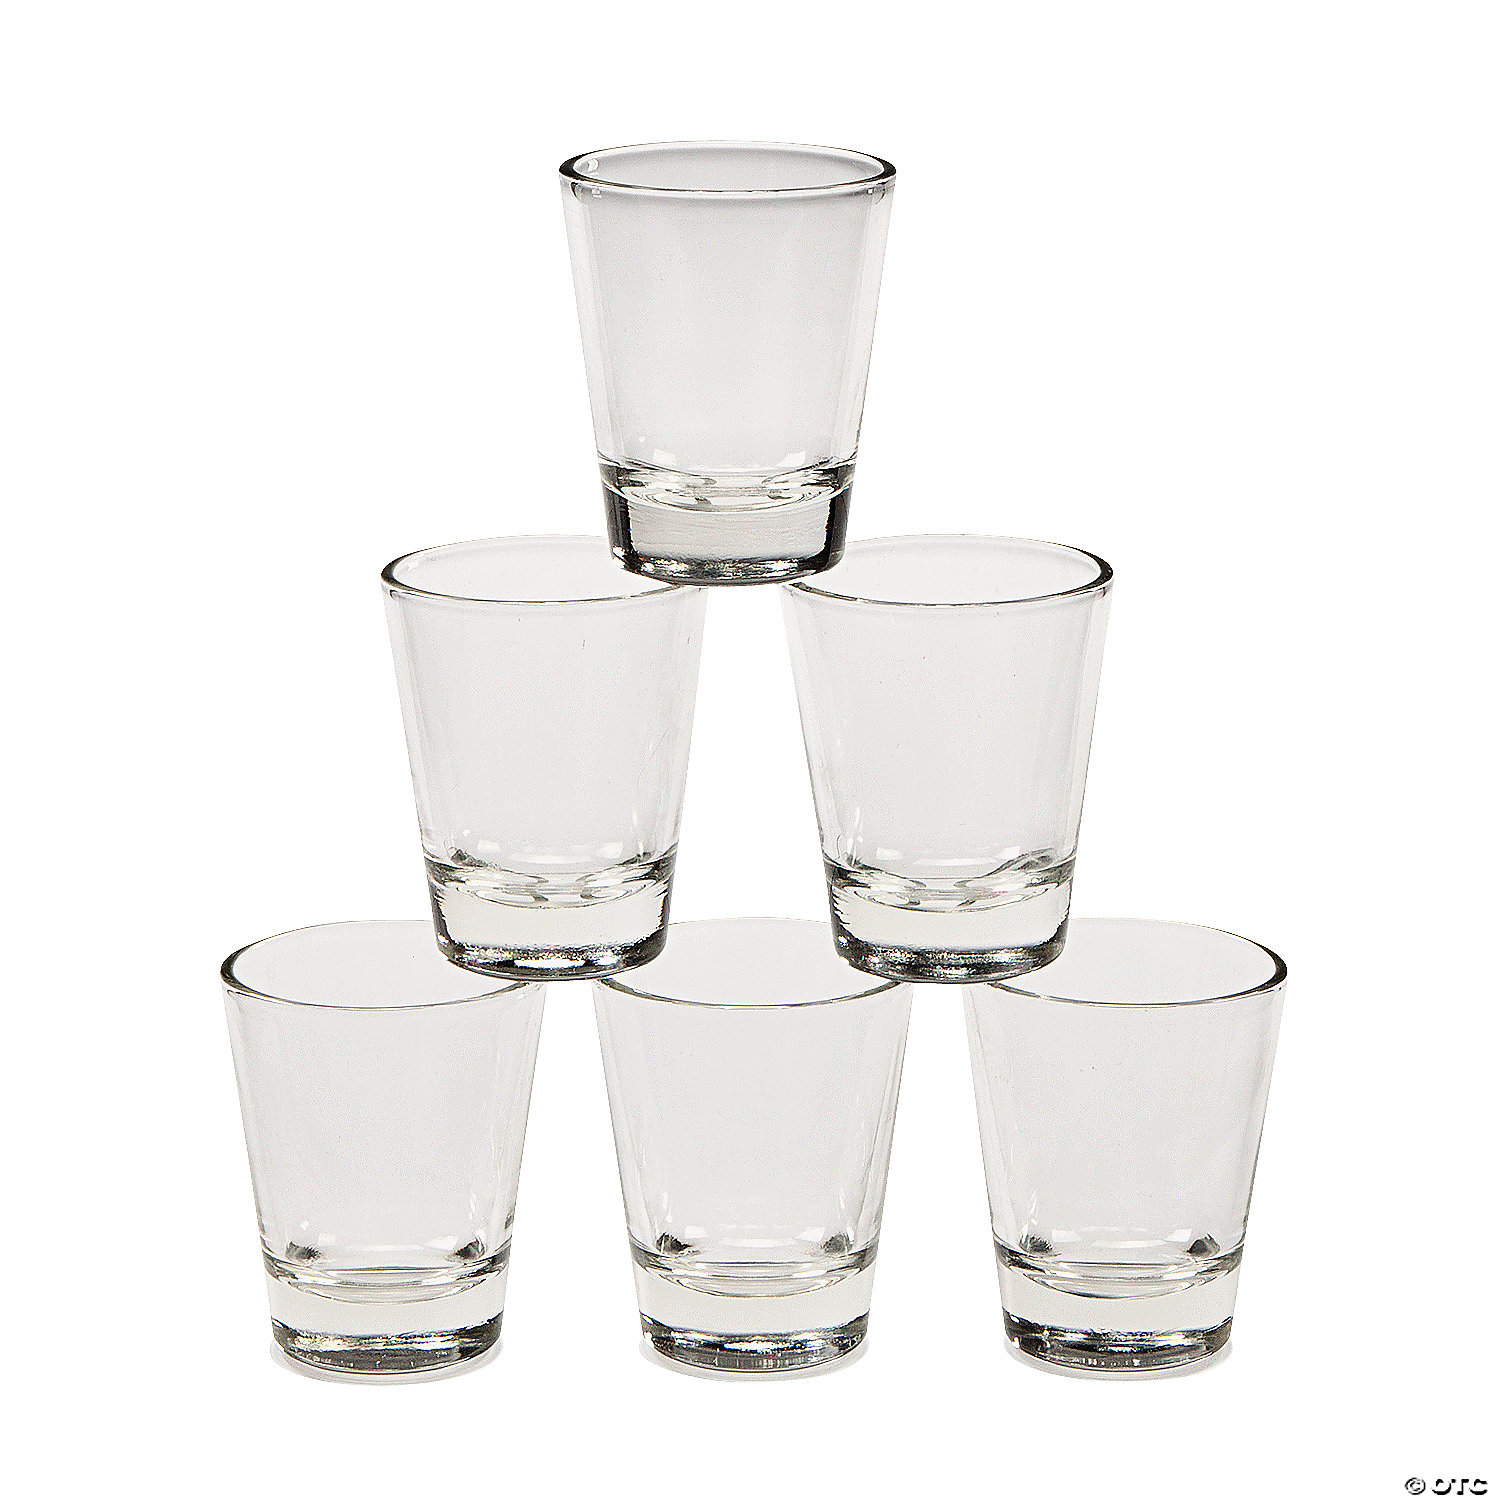 clear glass shot glasses